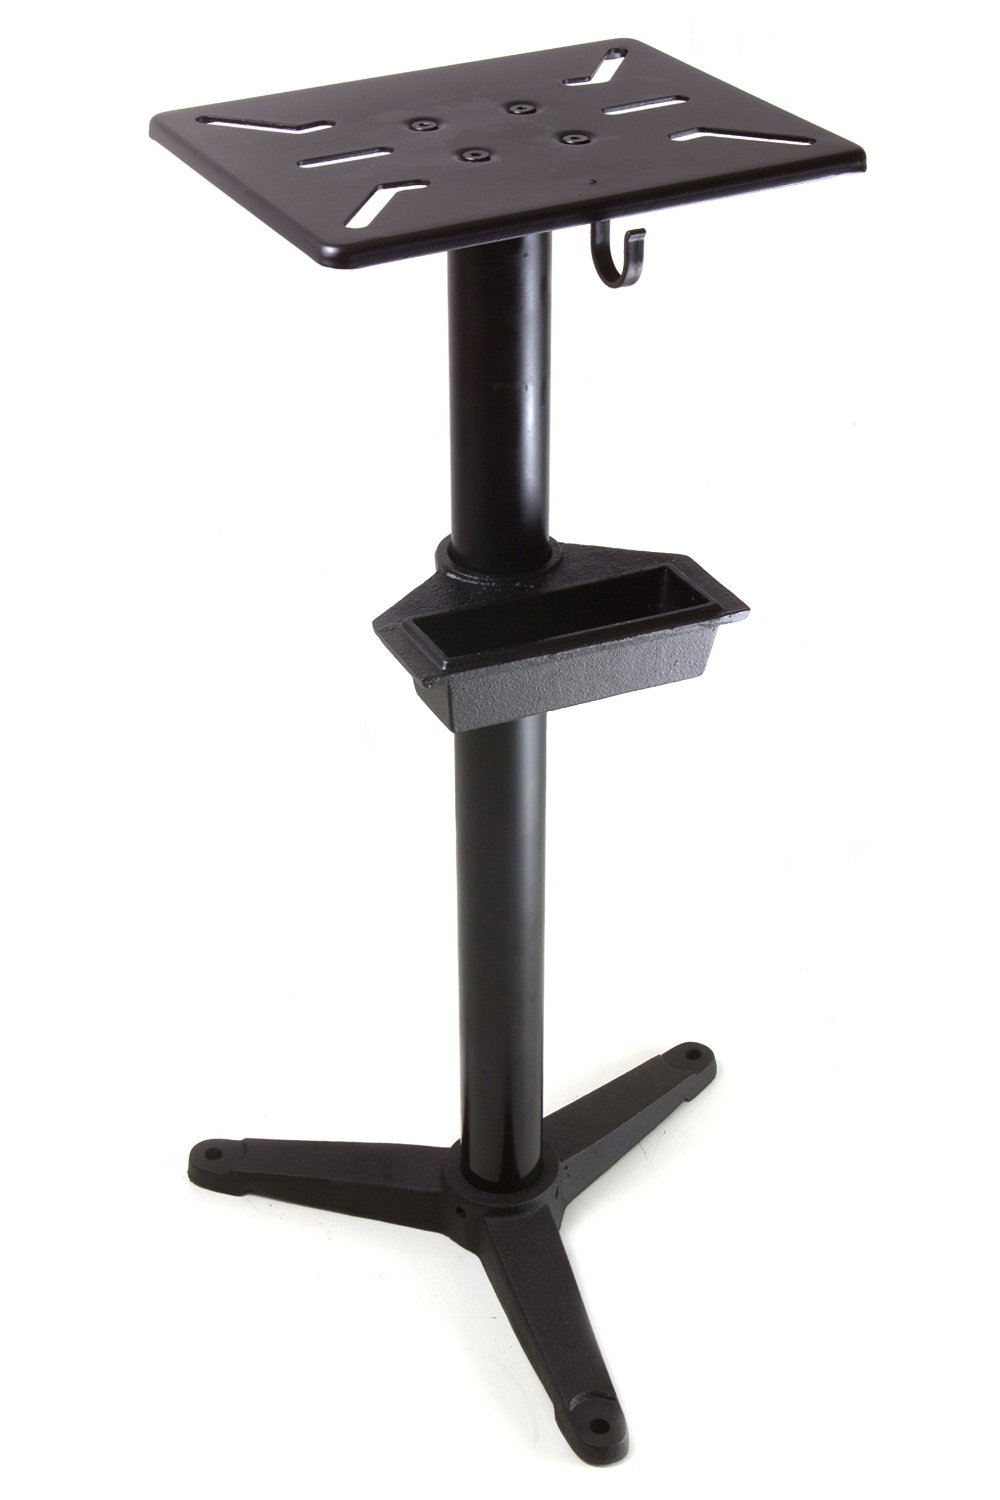 WEN 4288 Cast Iron Bench Grinder Pedestal Stand with